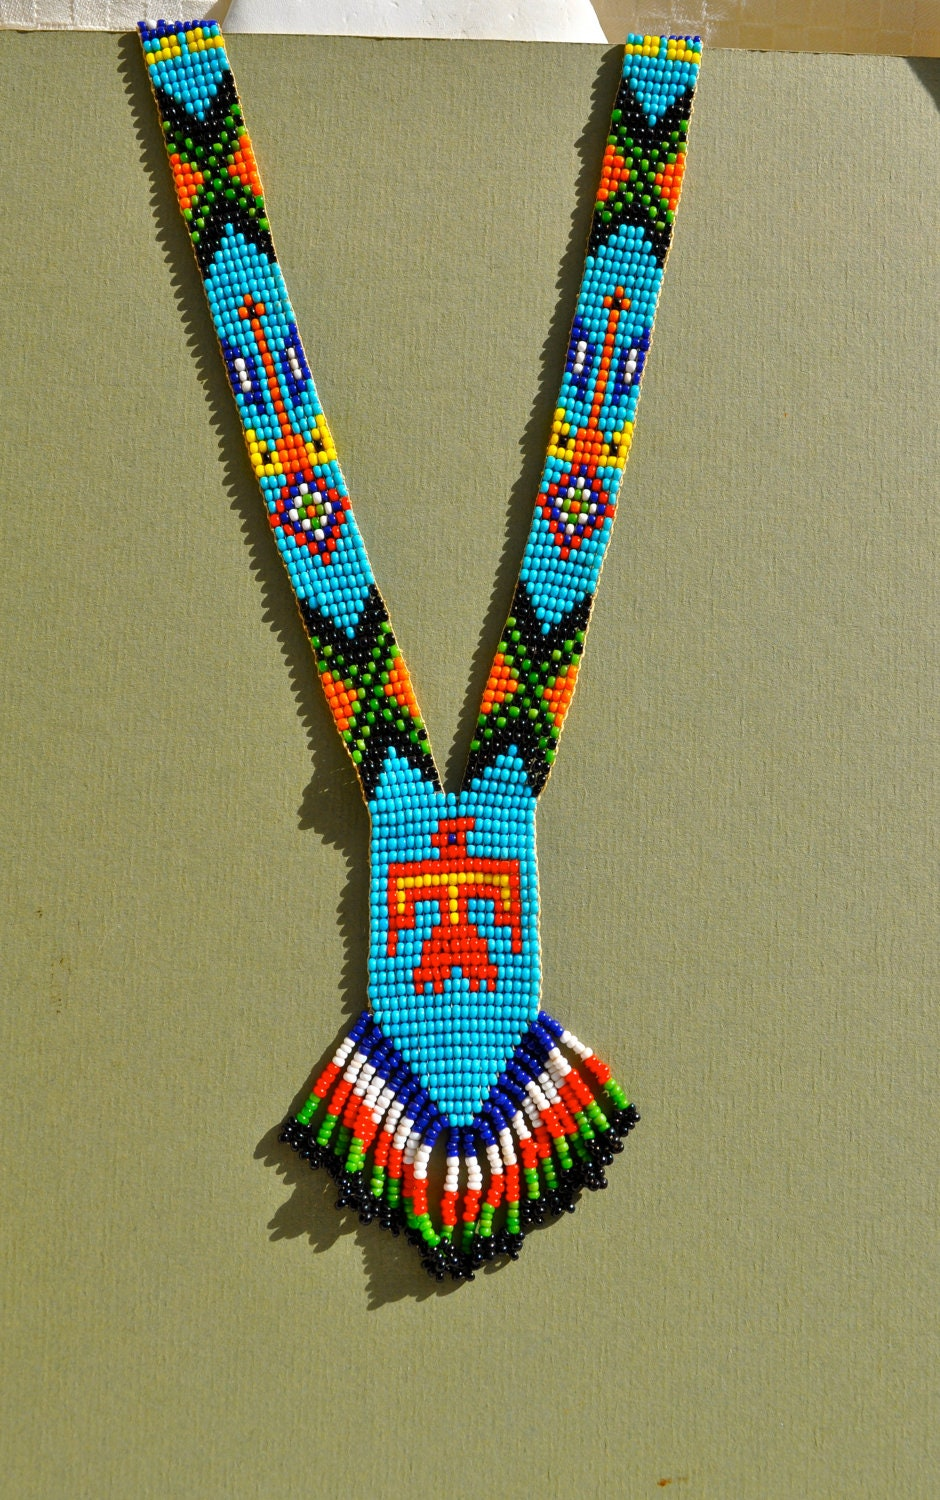 Vintage Native American Bead Necklace With Fringe By